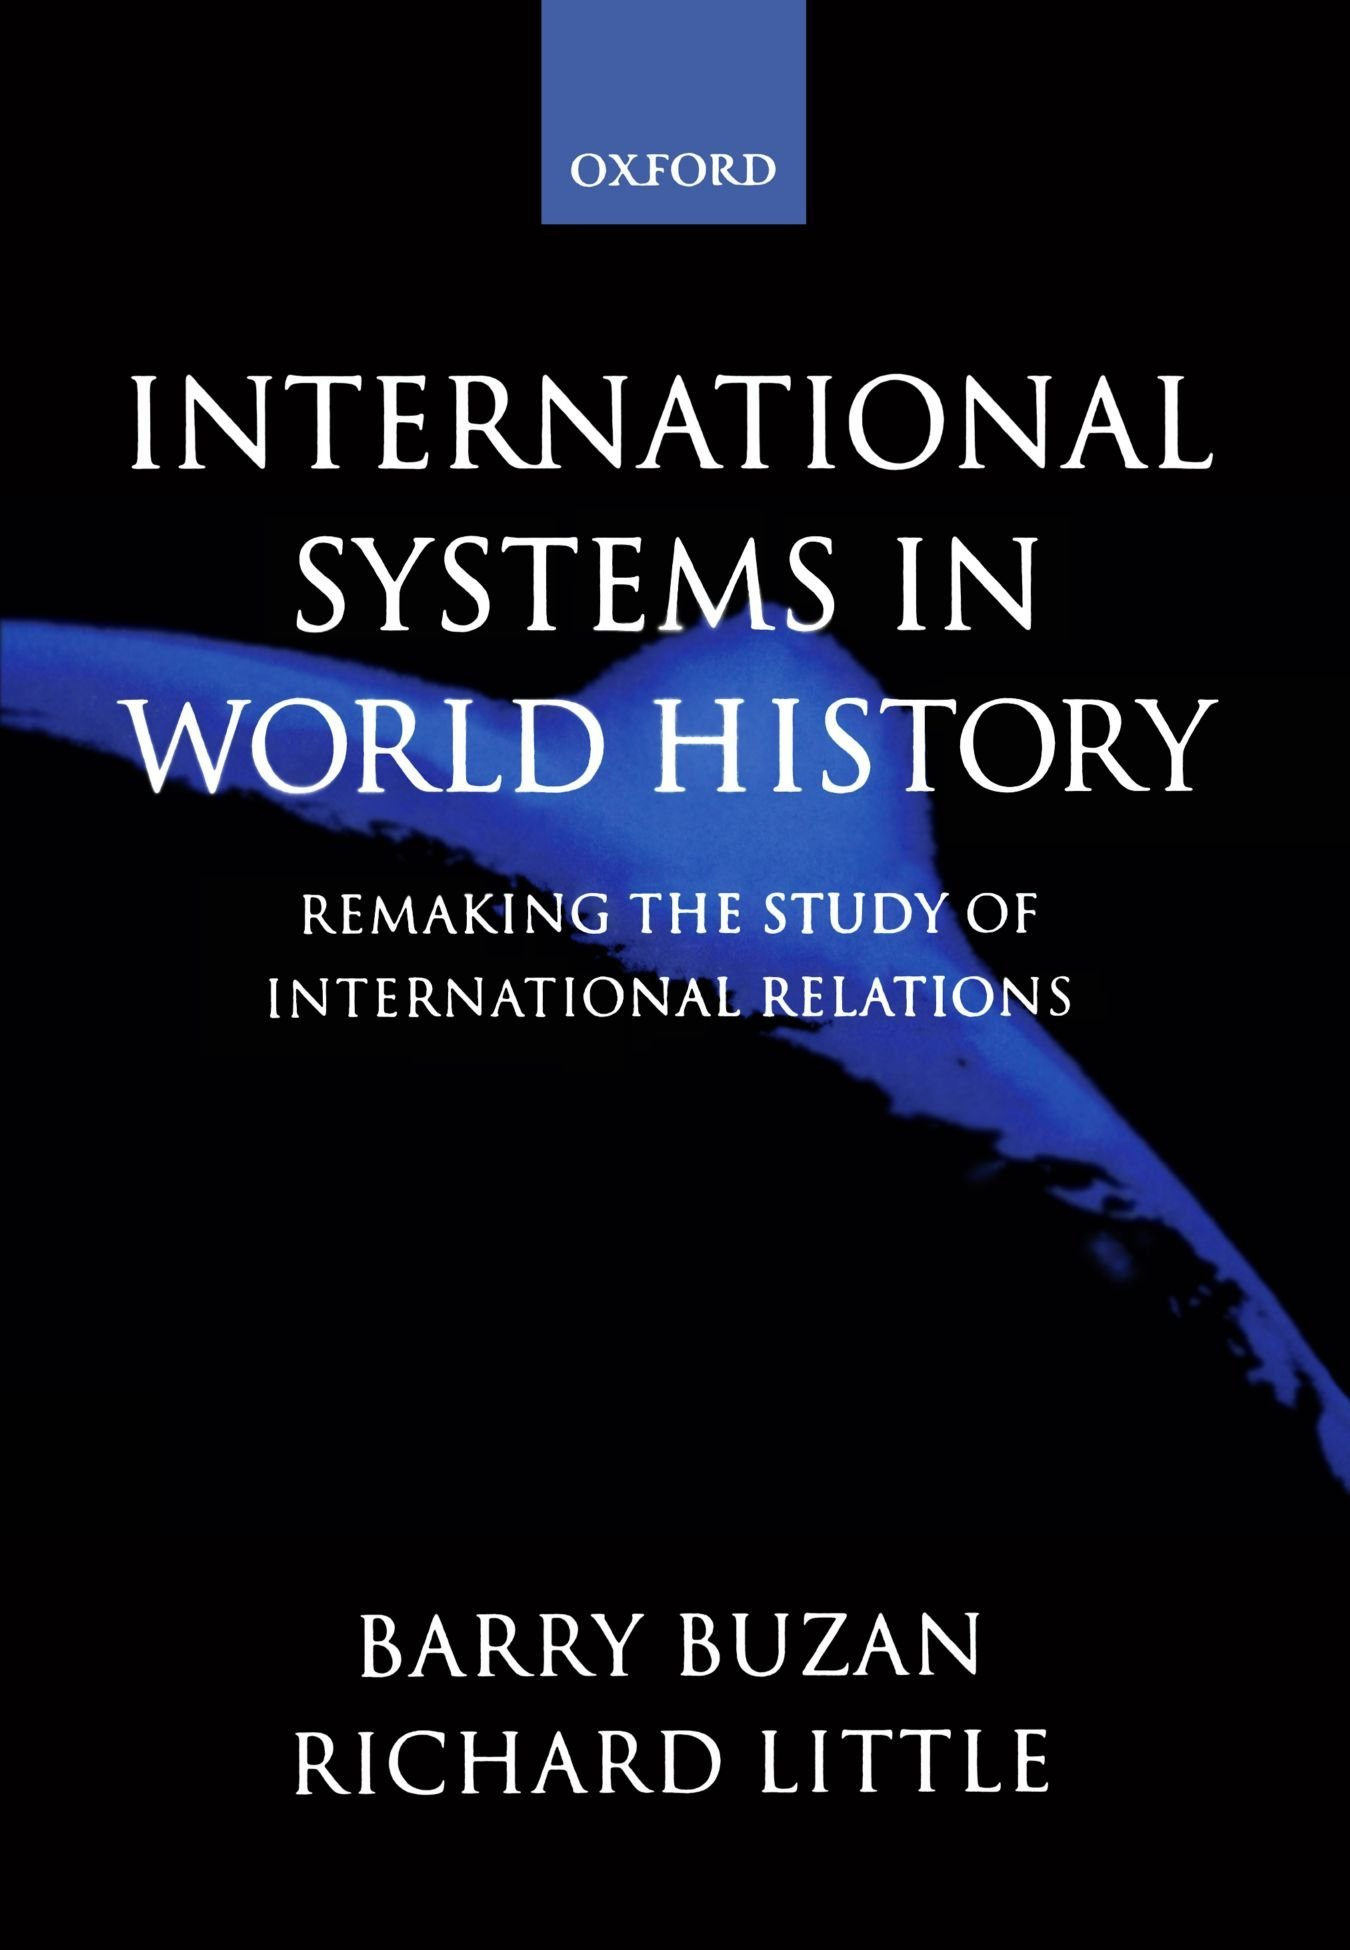 International Systems in World History: Remaking the Study